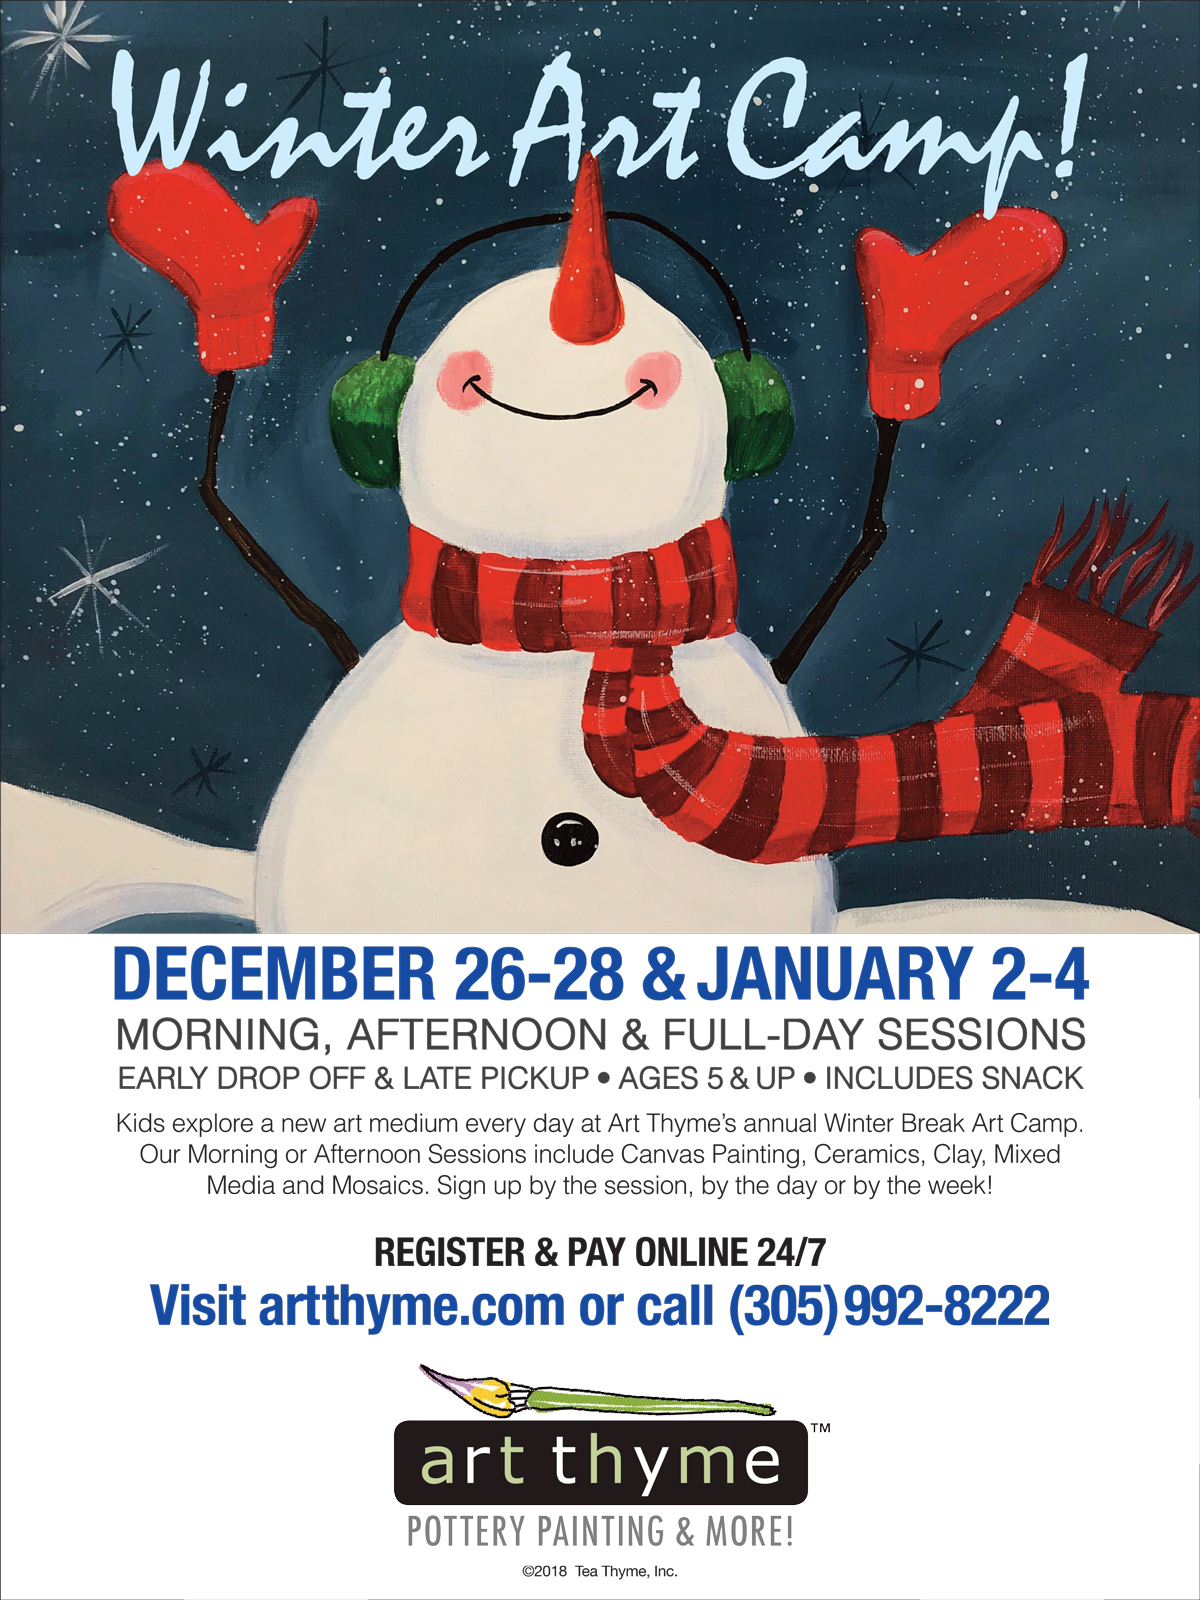 Winter Break Art Camp